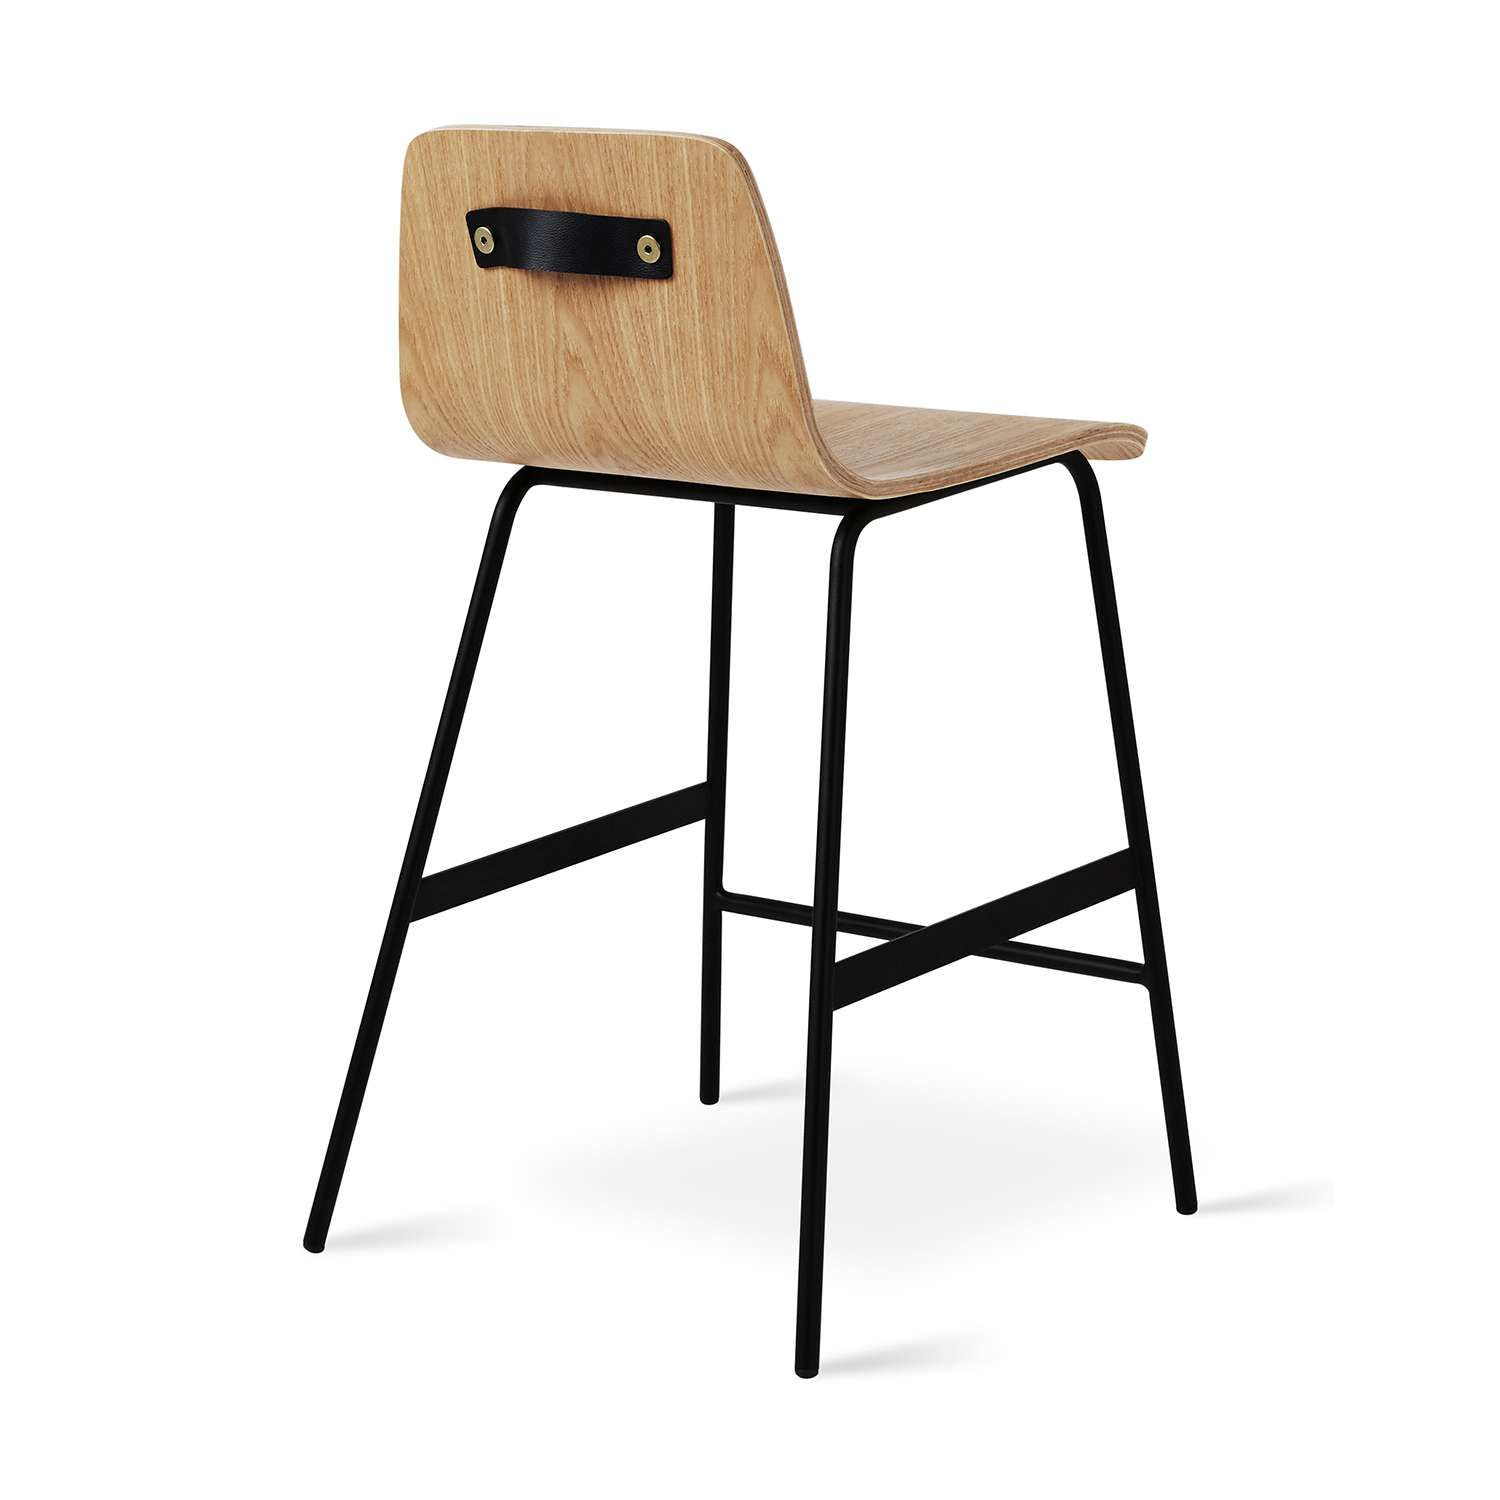 Lecture Stool Client Tate Amp Laura Counter Bar Stools